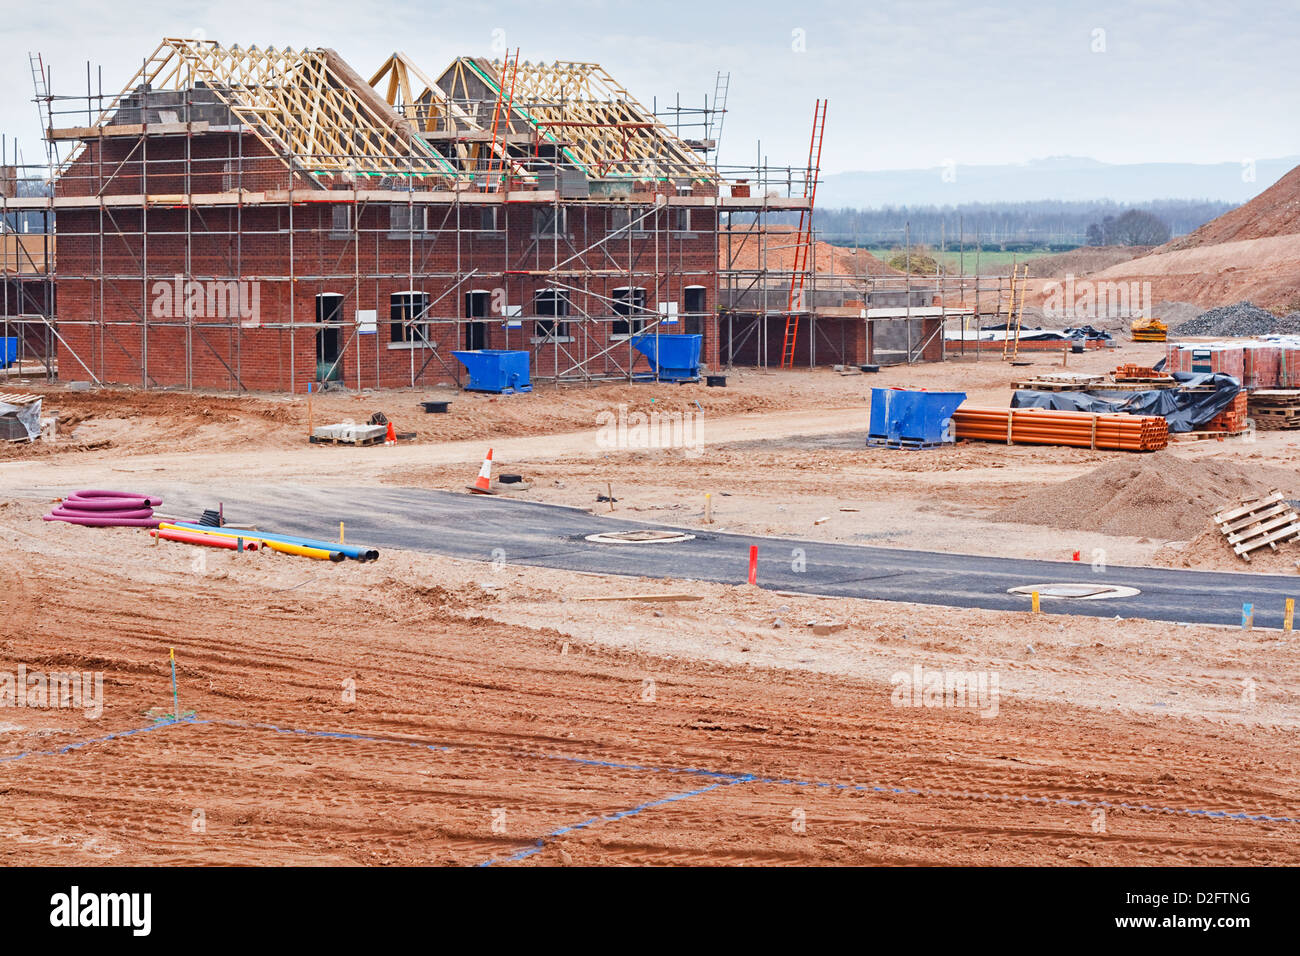 Partially built residential housing building site with homes in early stages of construction - Stock Image